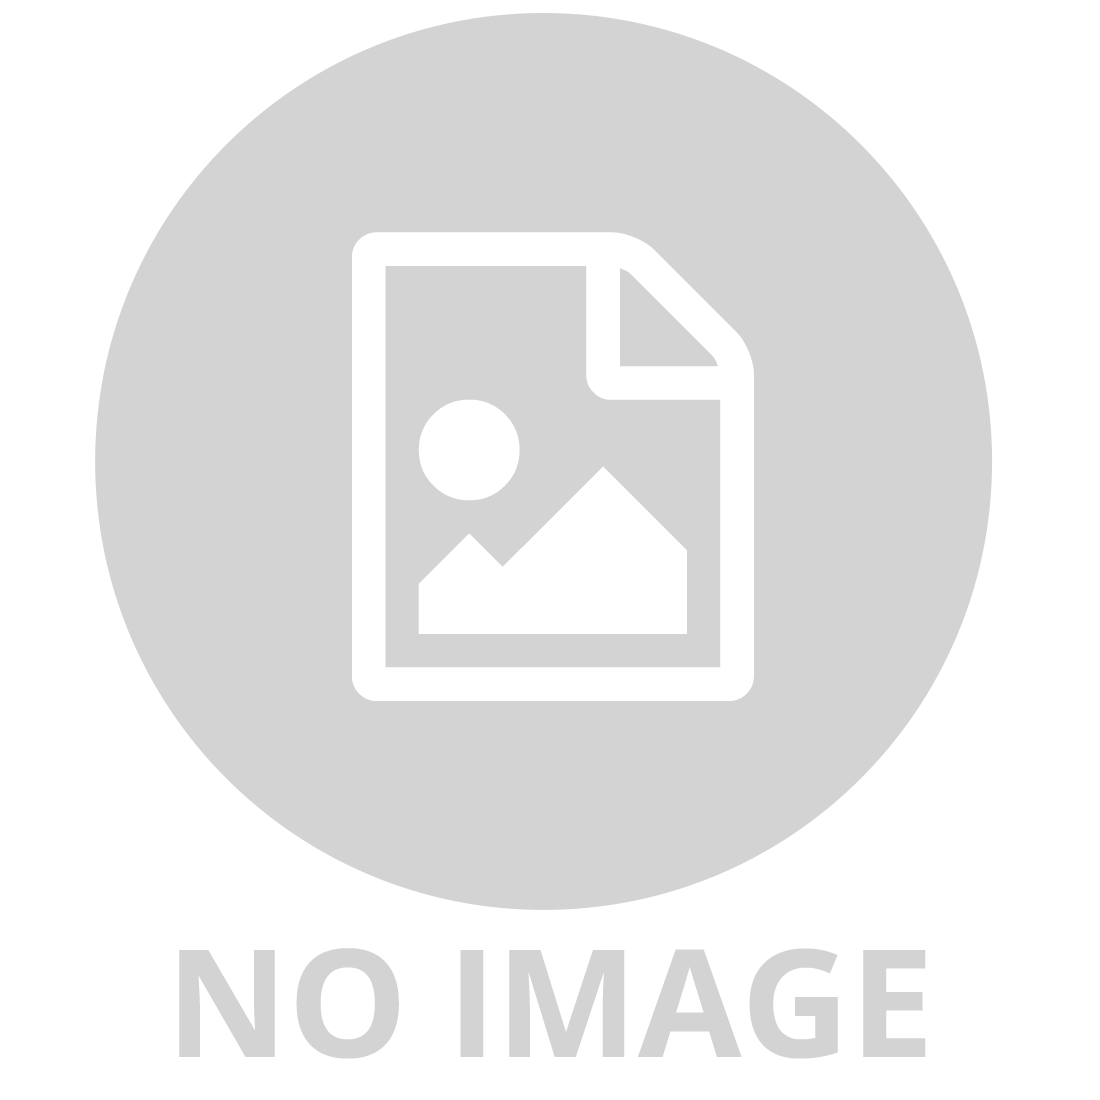 AXIAL THREADED ALUMINUM PIPE 6 X 33MM GREY (2PCS)